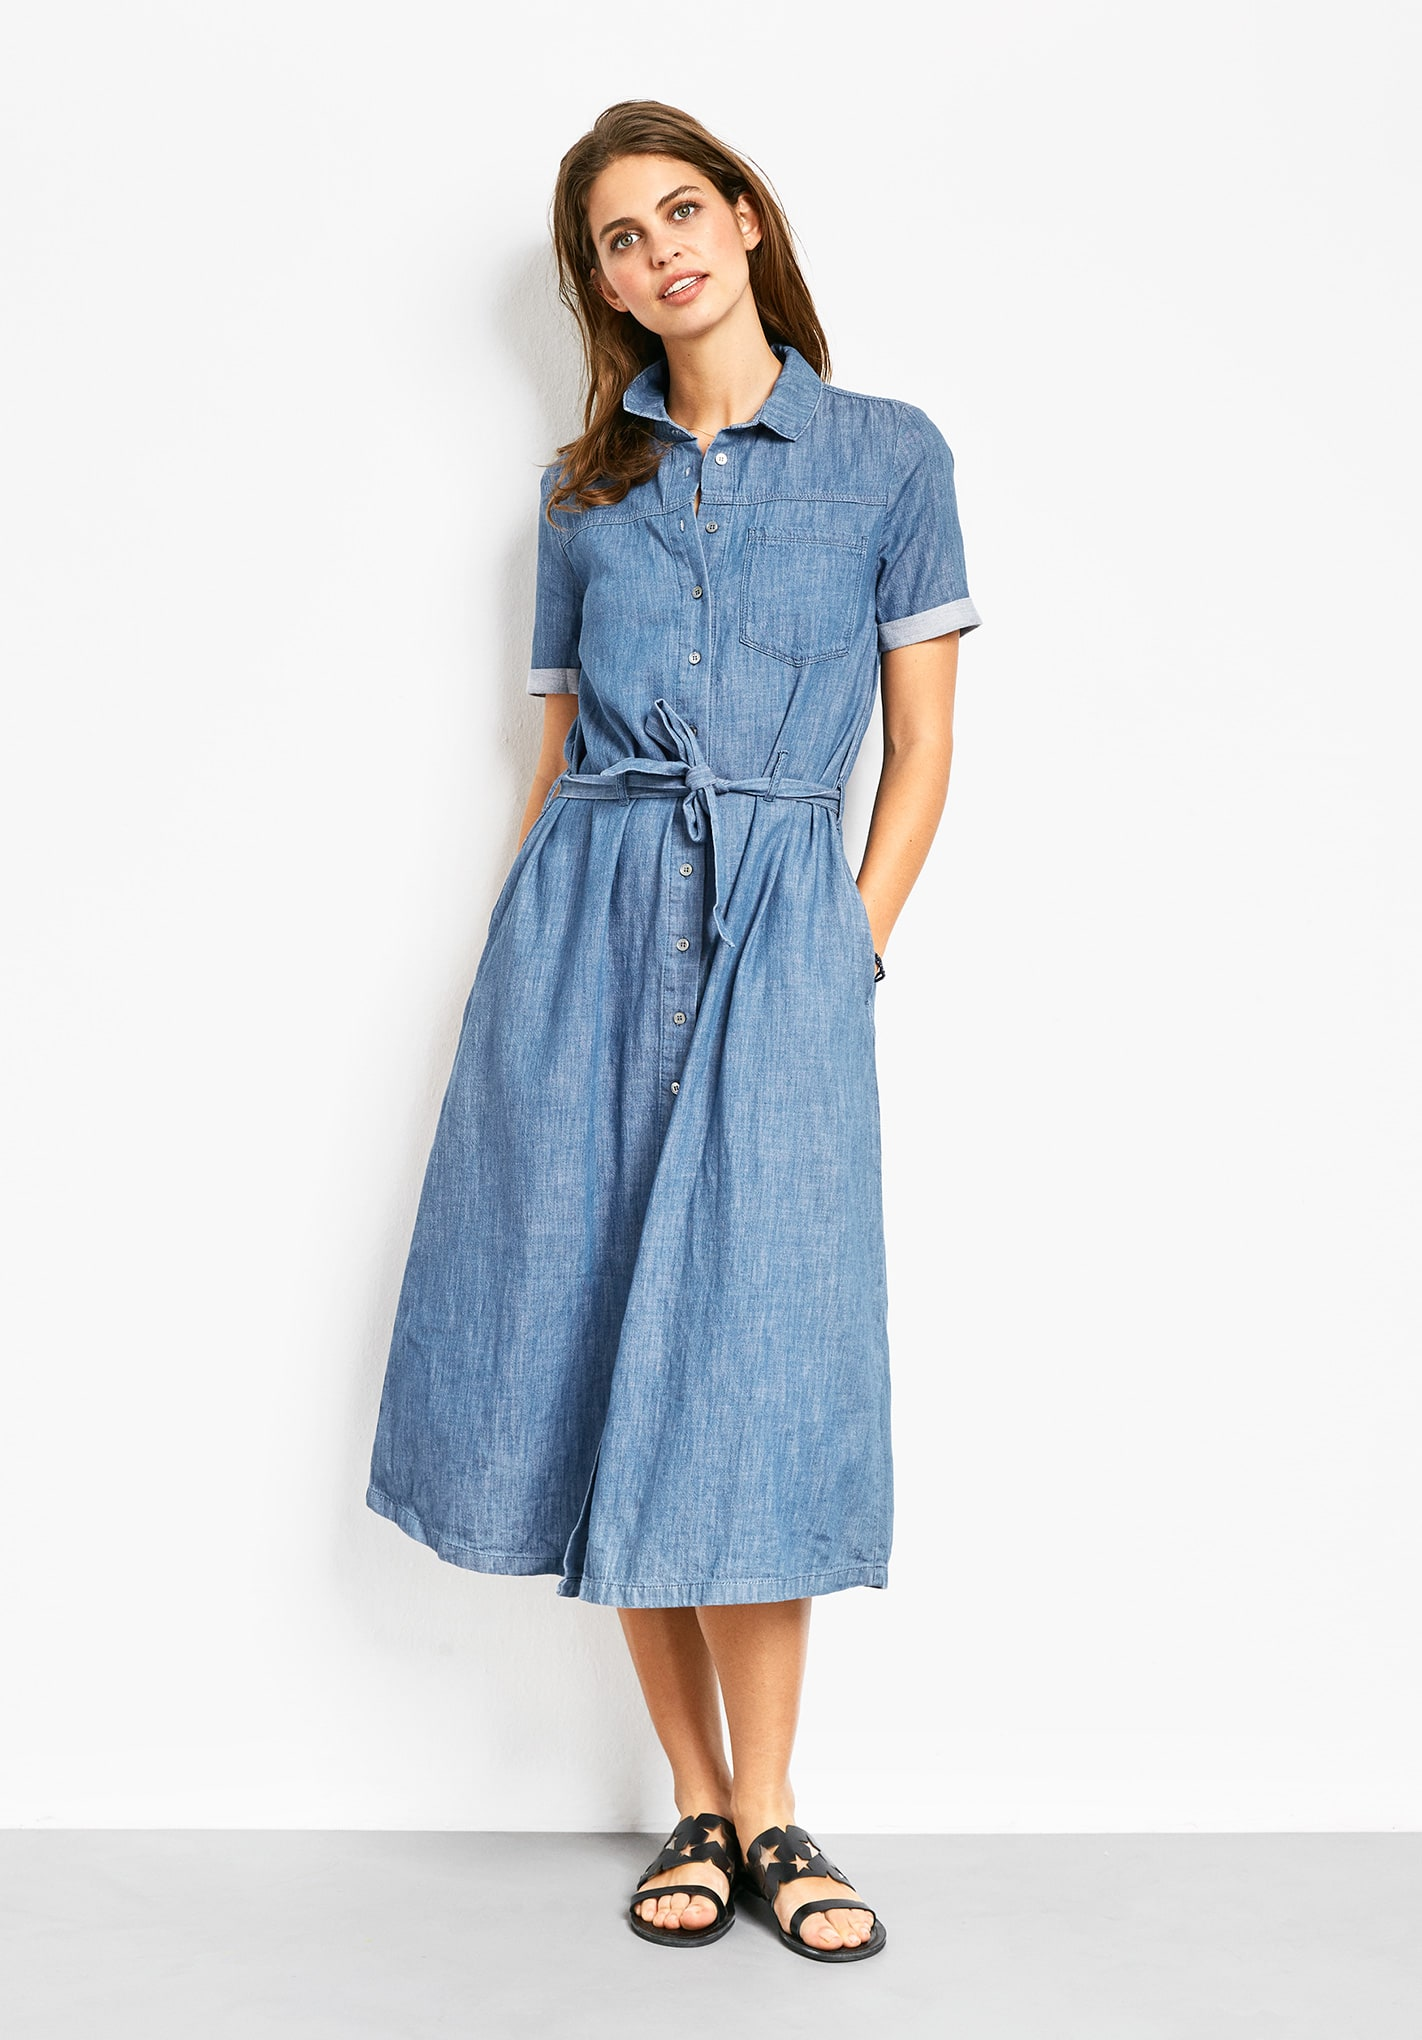 Chambray dresses for women images for Chambray dress